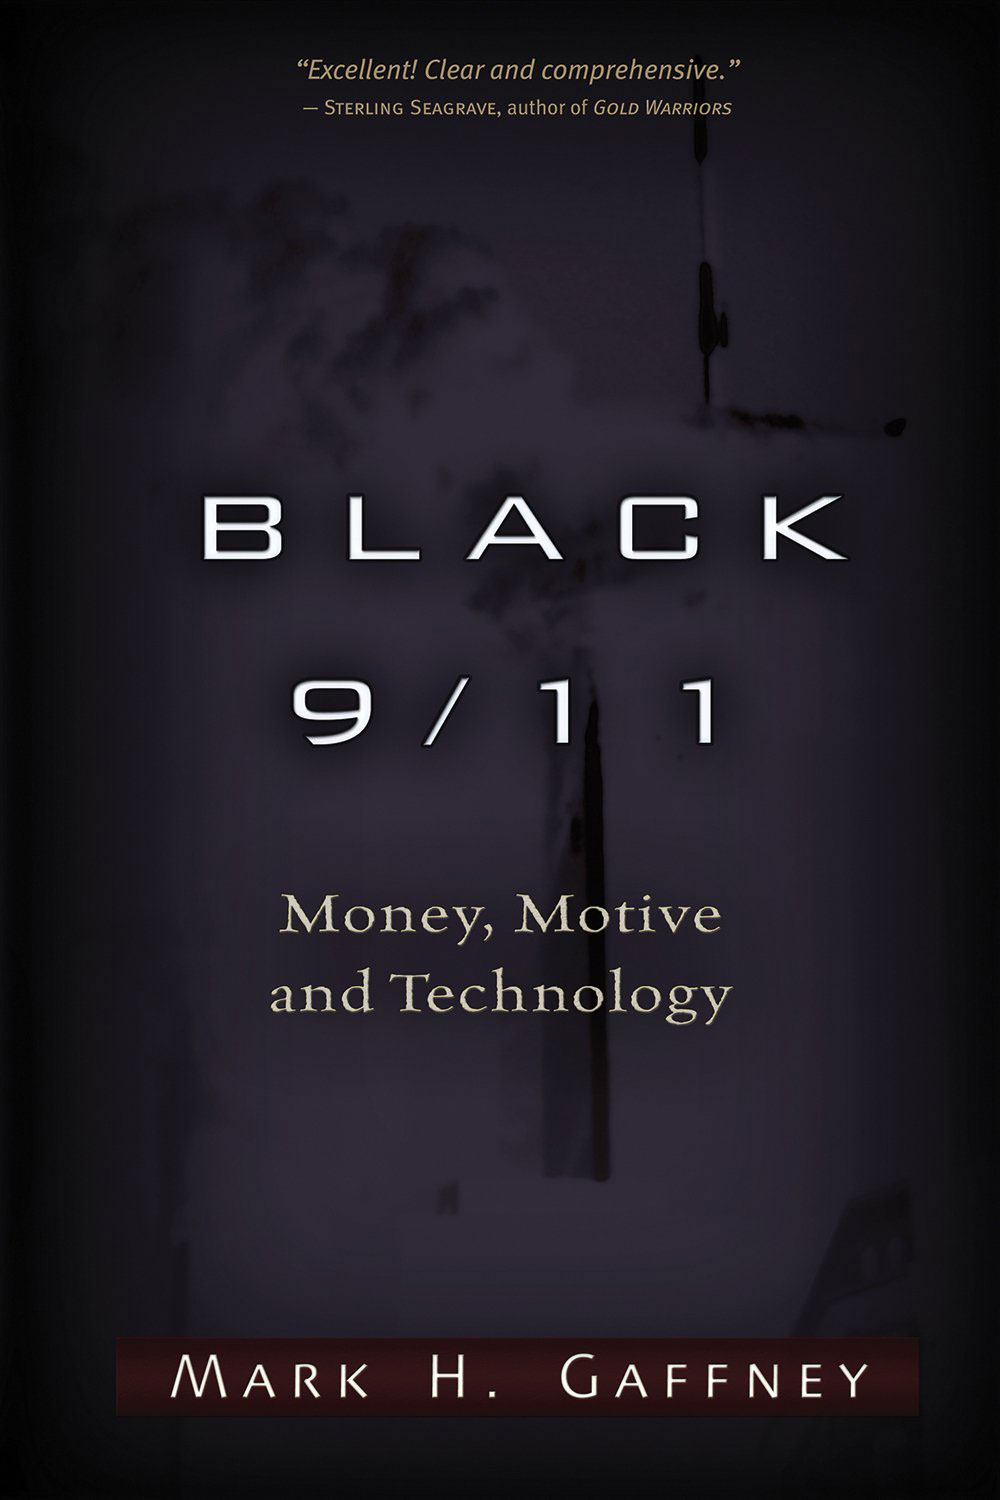 Black 9/11: Money, Motive and Technology By: Mark H. Gaffney